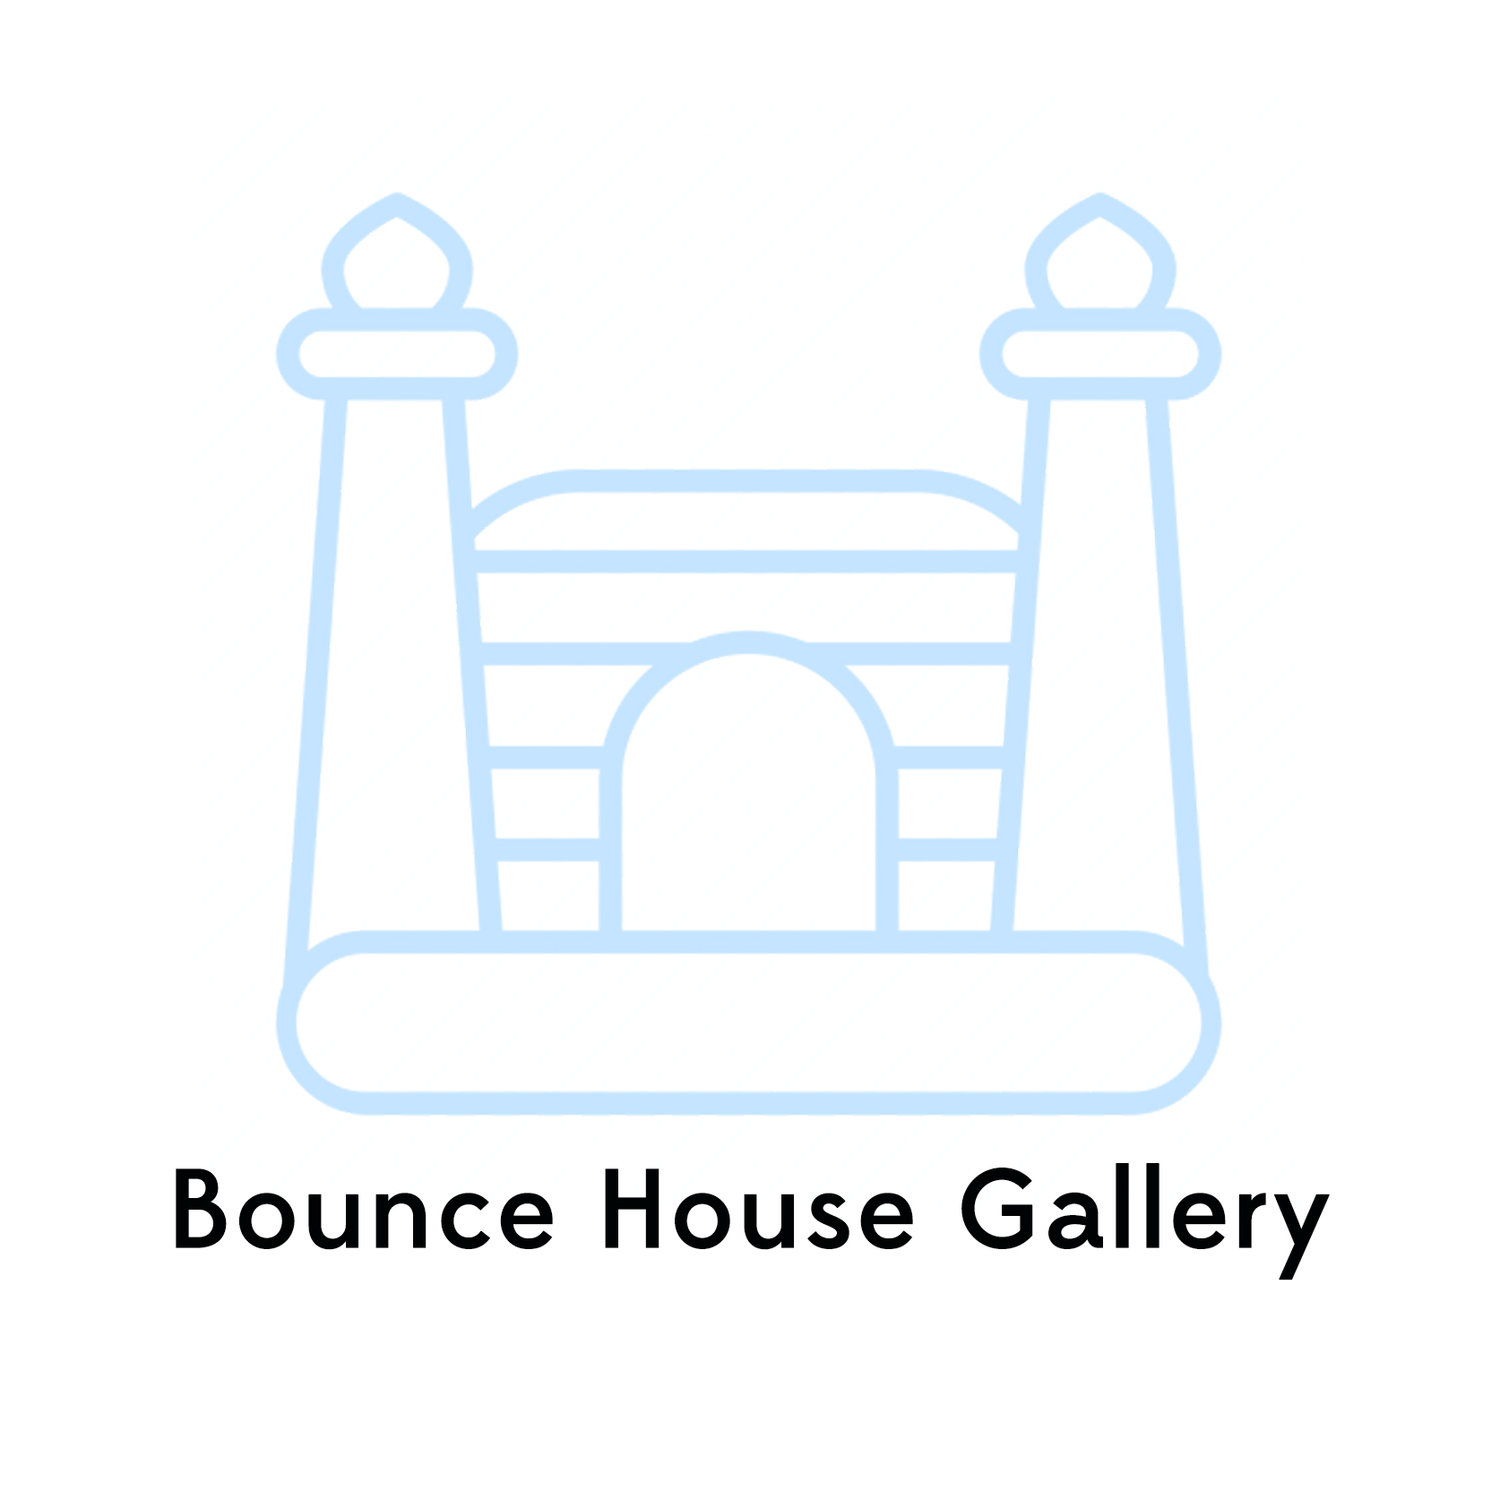 Bounce House Gallery